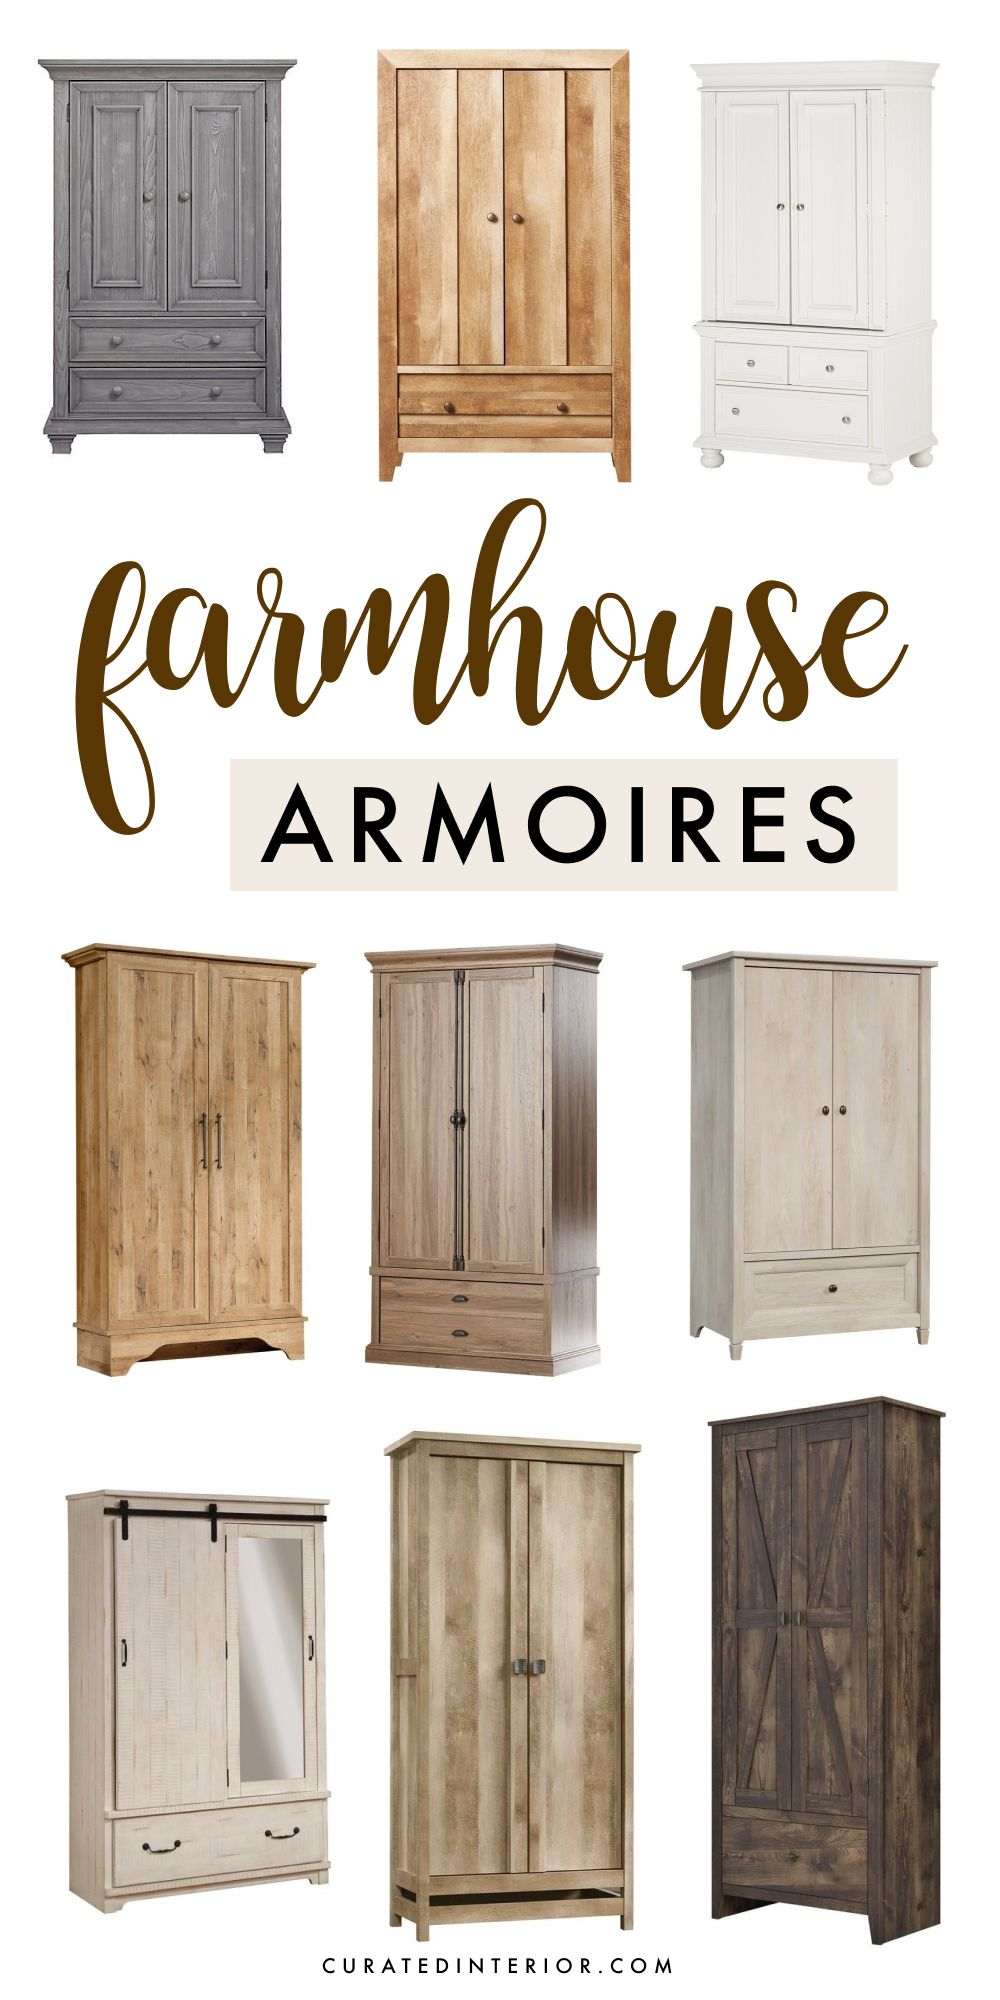 10 Farmhouse Armoires with Rustic Charm